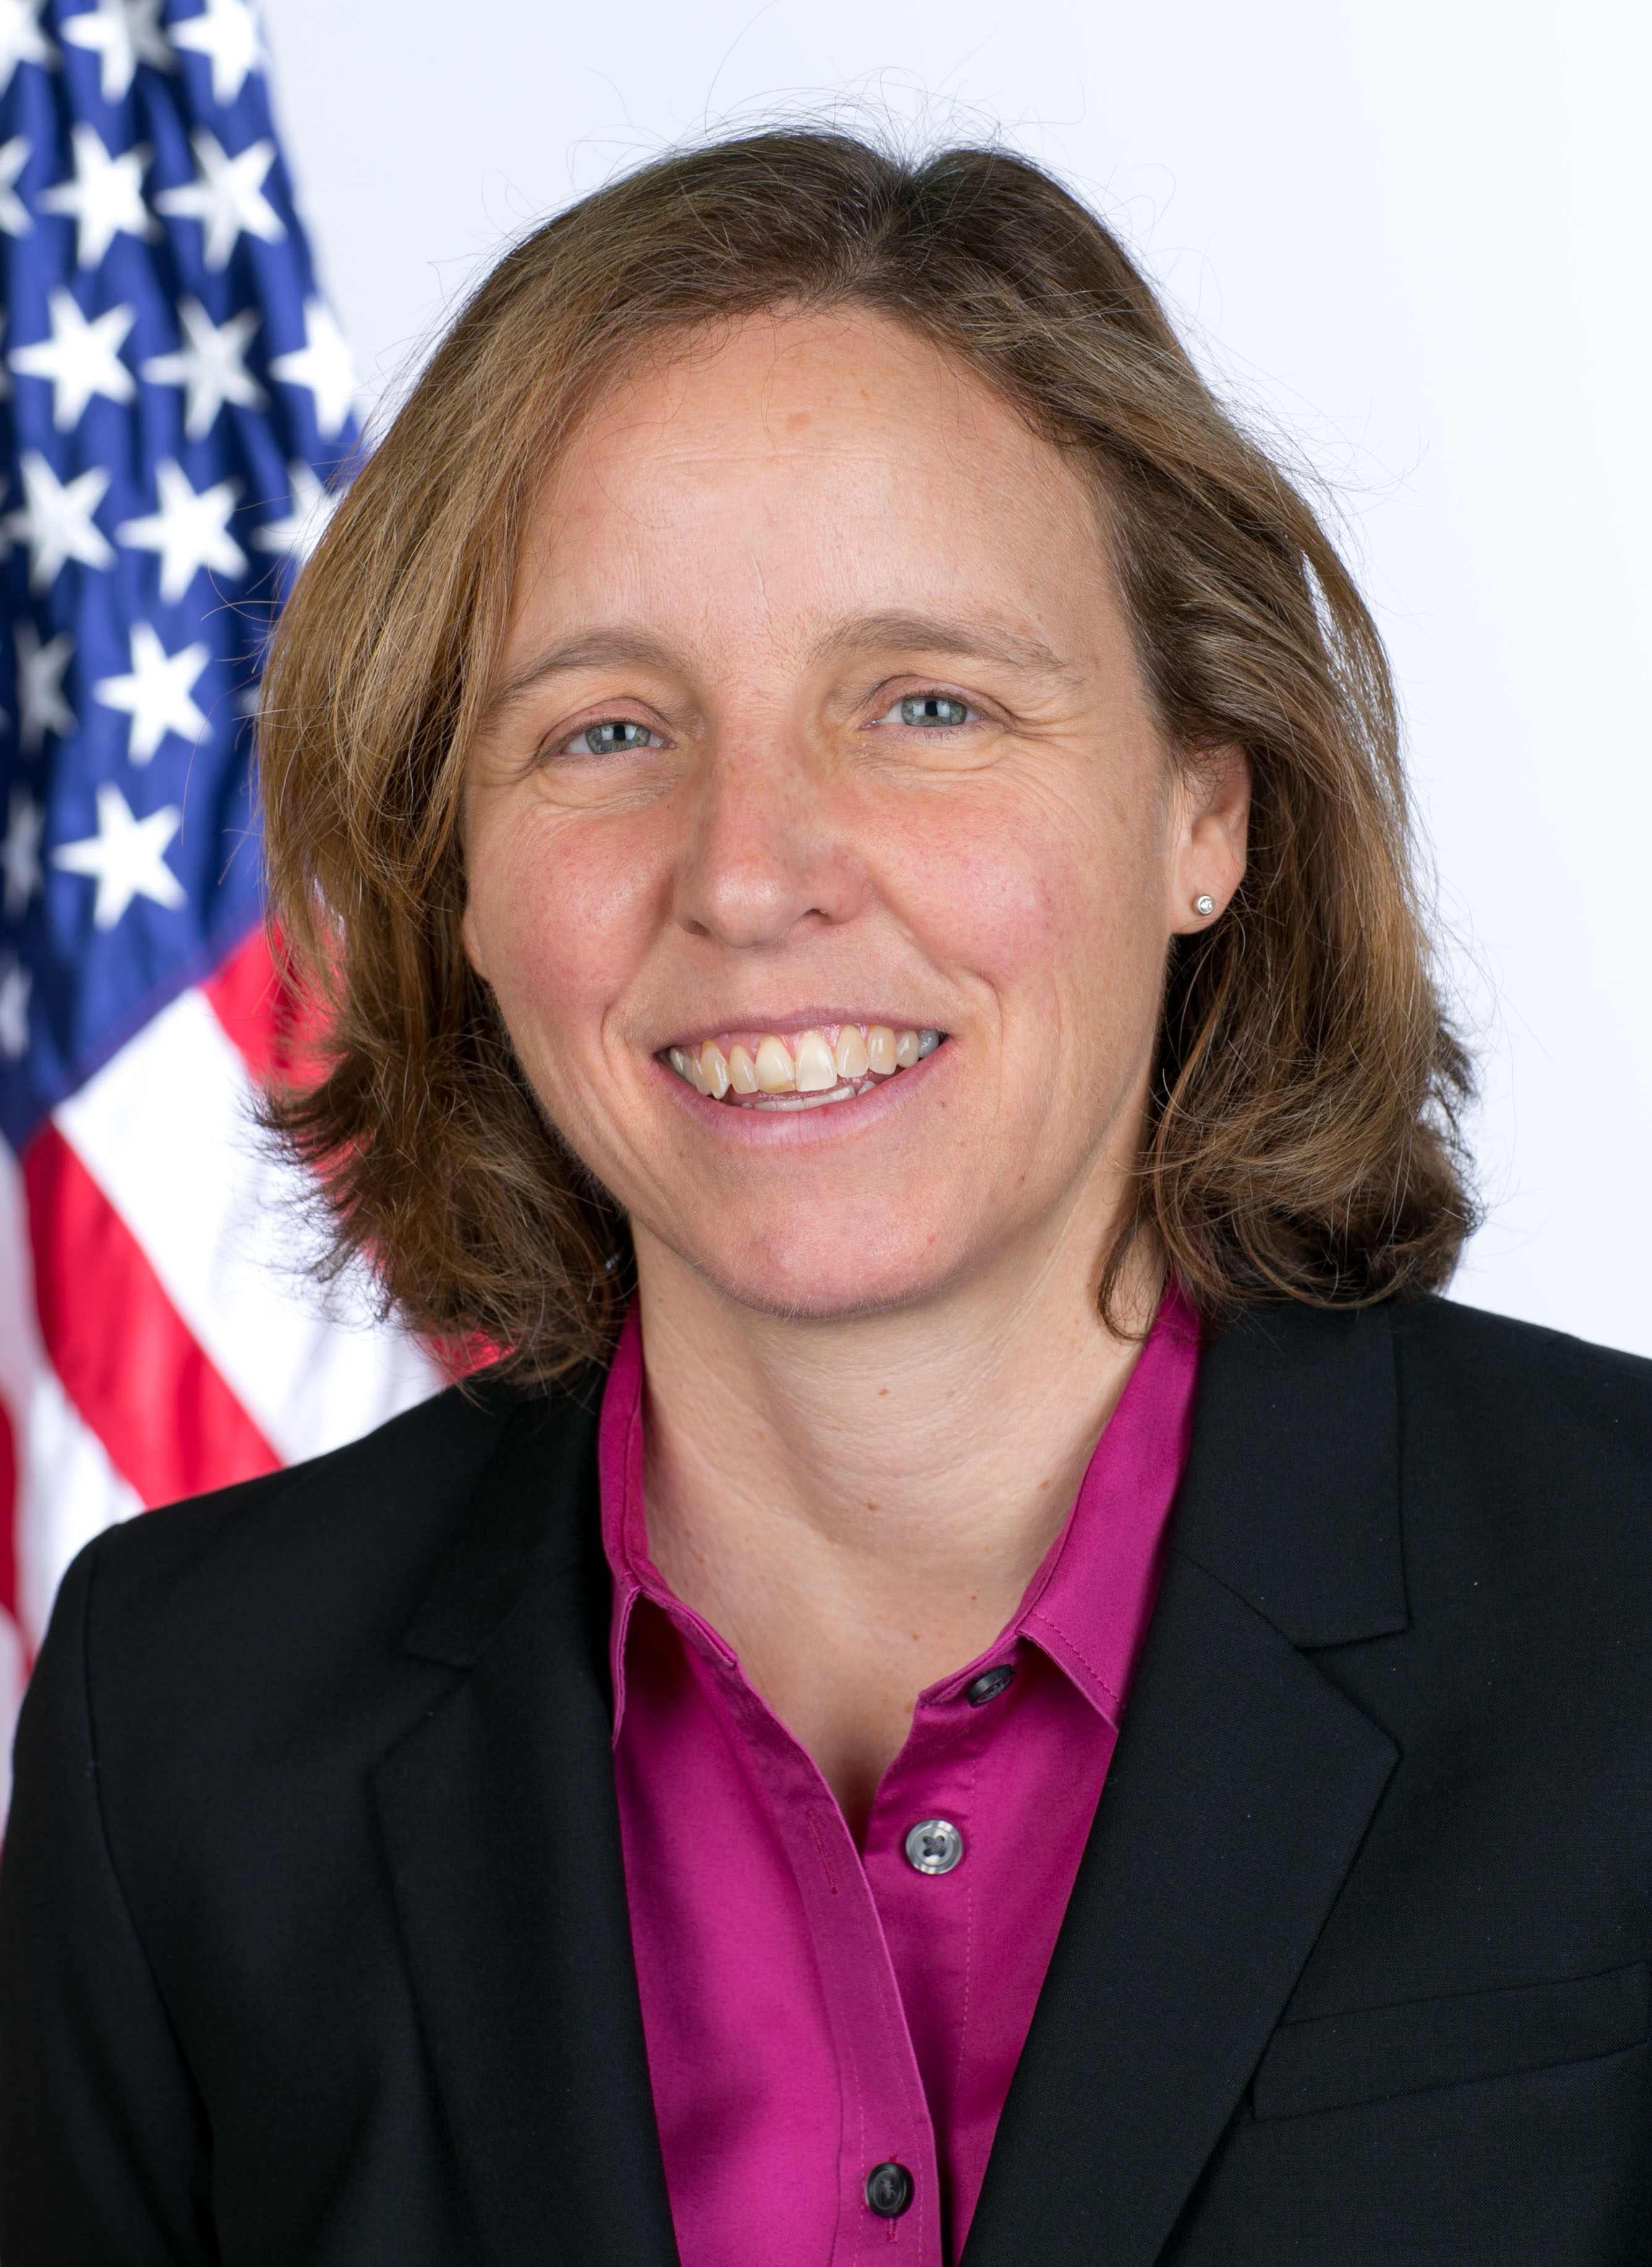 Megan Smith, OSTP, portrait taken during the commissioned officer portrait session in the Eisenhower Executive Office Building of the White House, Sept. 30, 2014. (Official White House Photo by Chuck Kennedy)